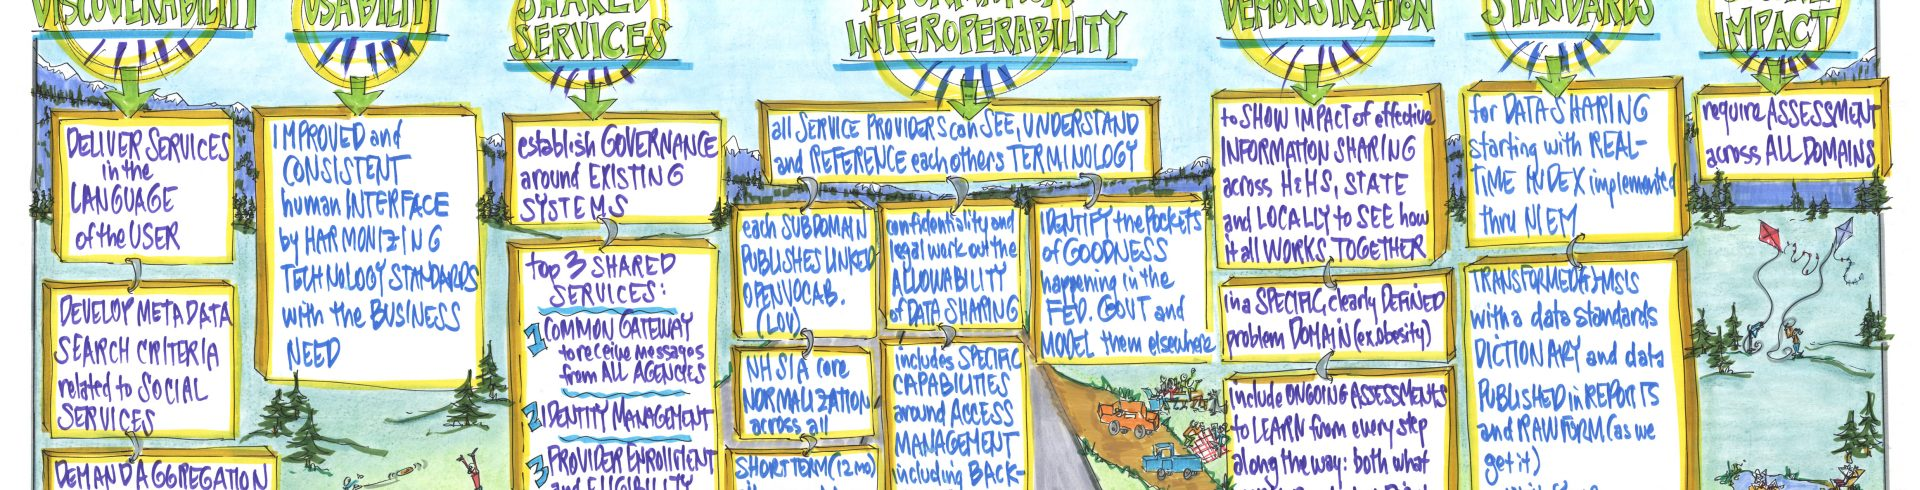 SOCI2014 – Defining The Art of the Possible: Charting Project Interoperability within HHS and Beyond – Tech, Training, and Standards